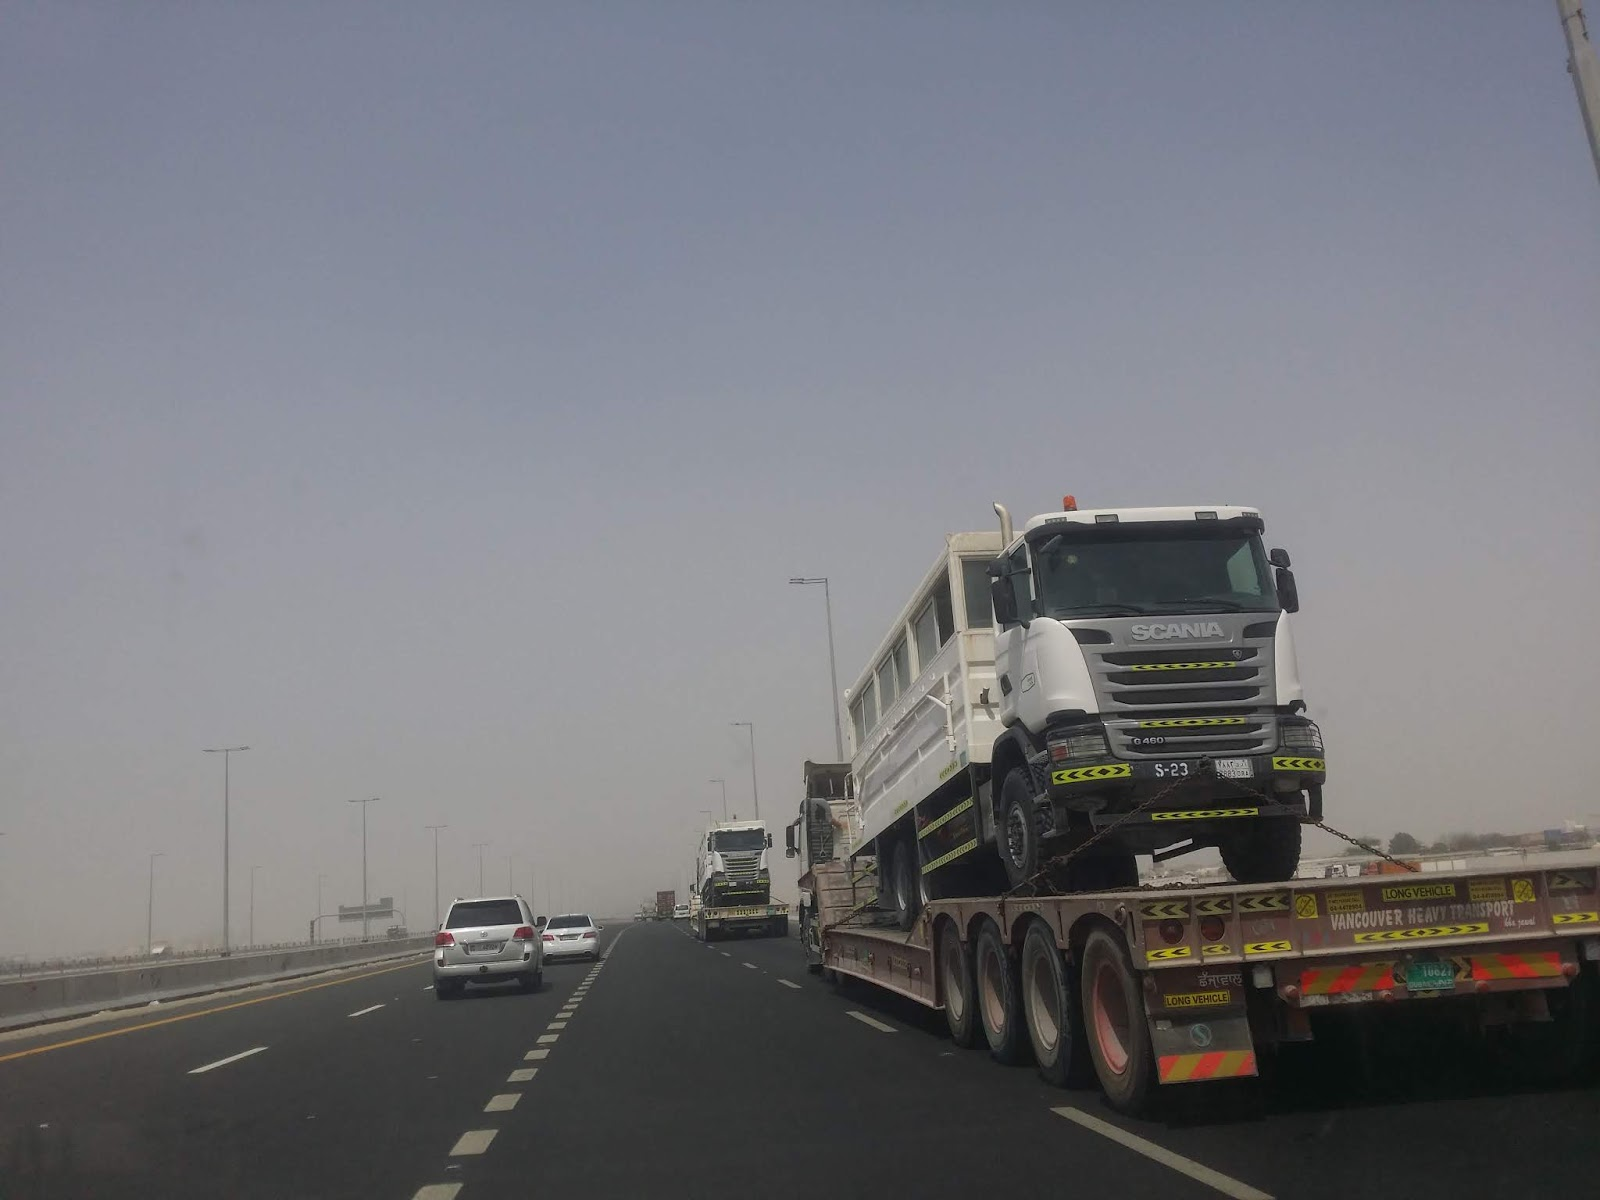 Abdu Dhabi - Scannia Truck loaded on Tripper Triller Mafraq